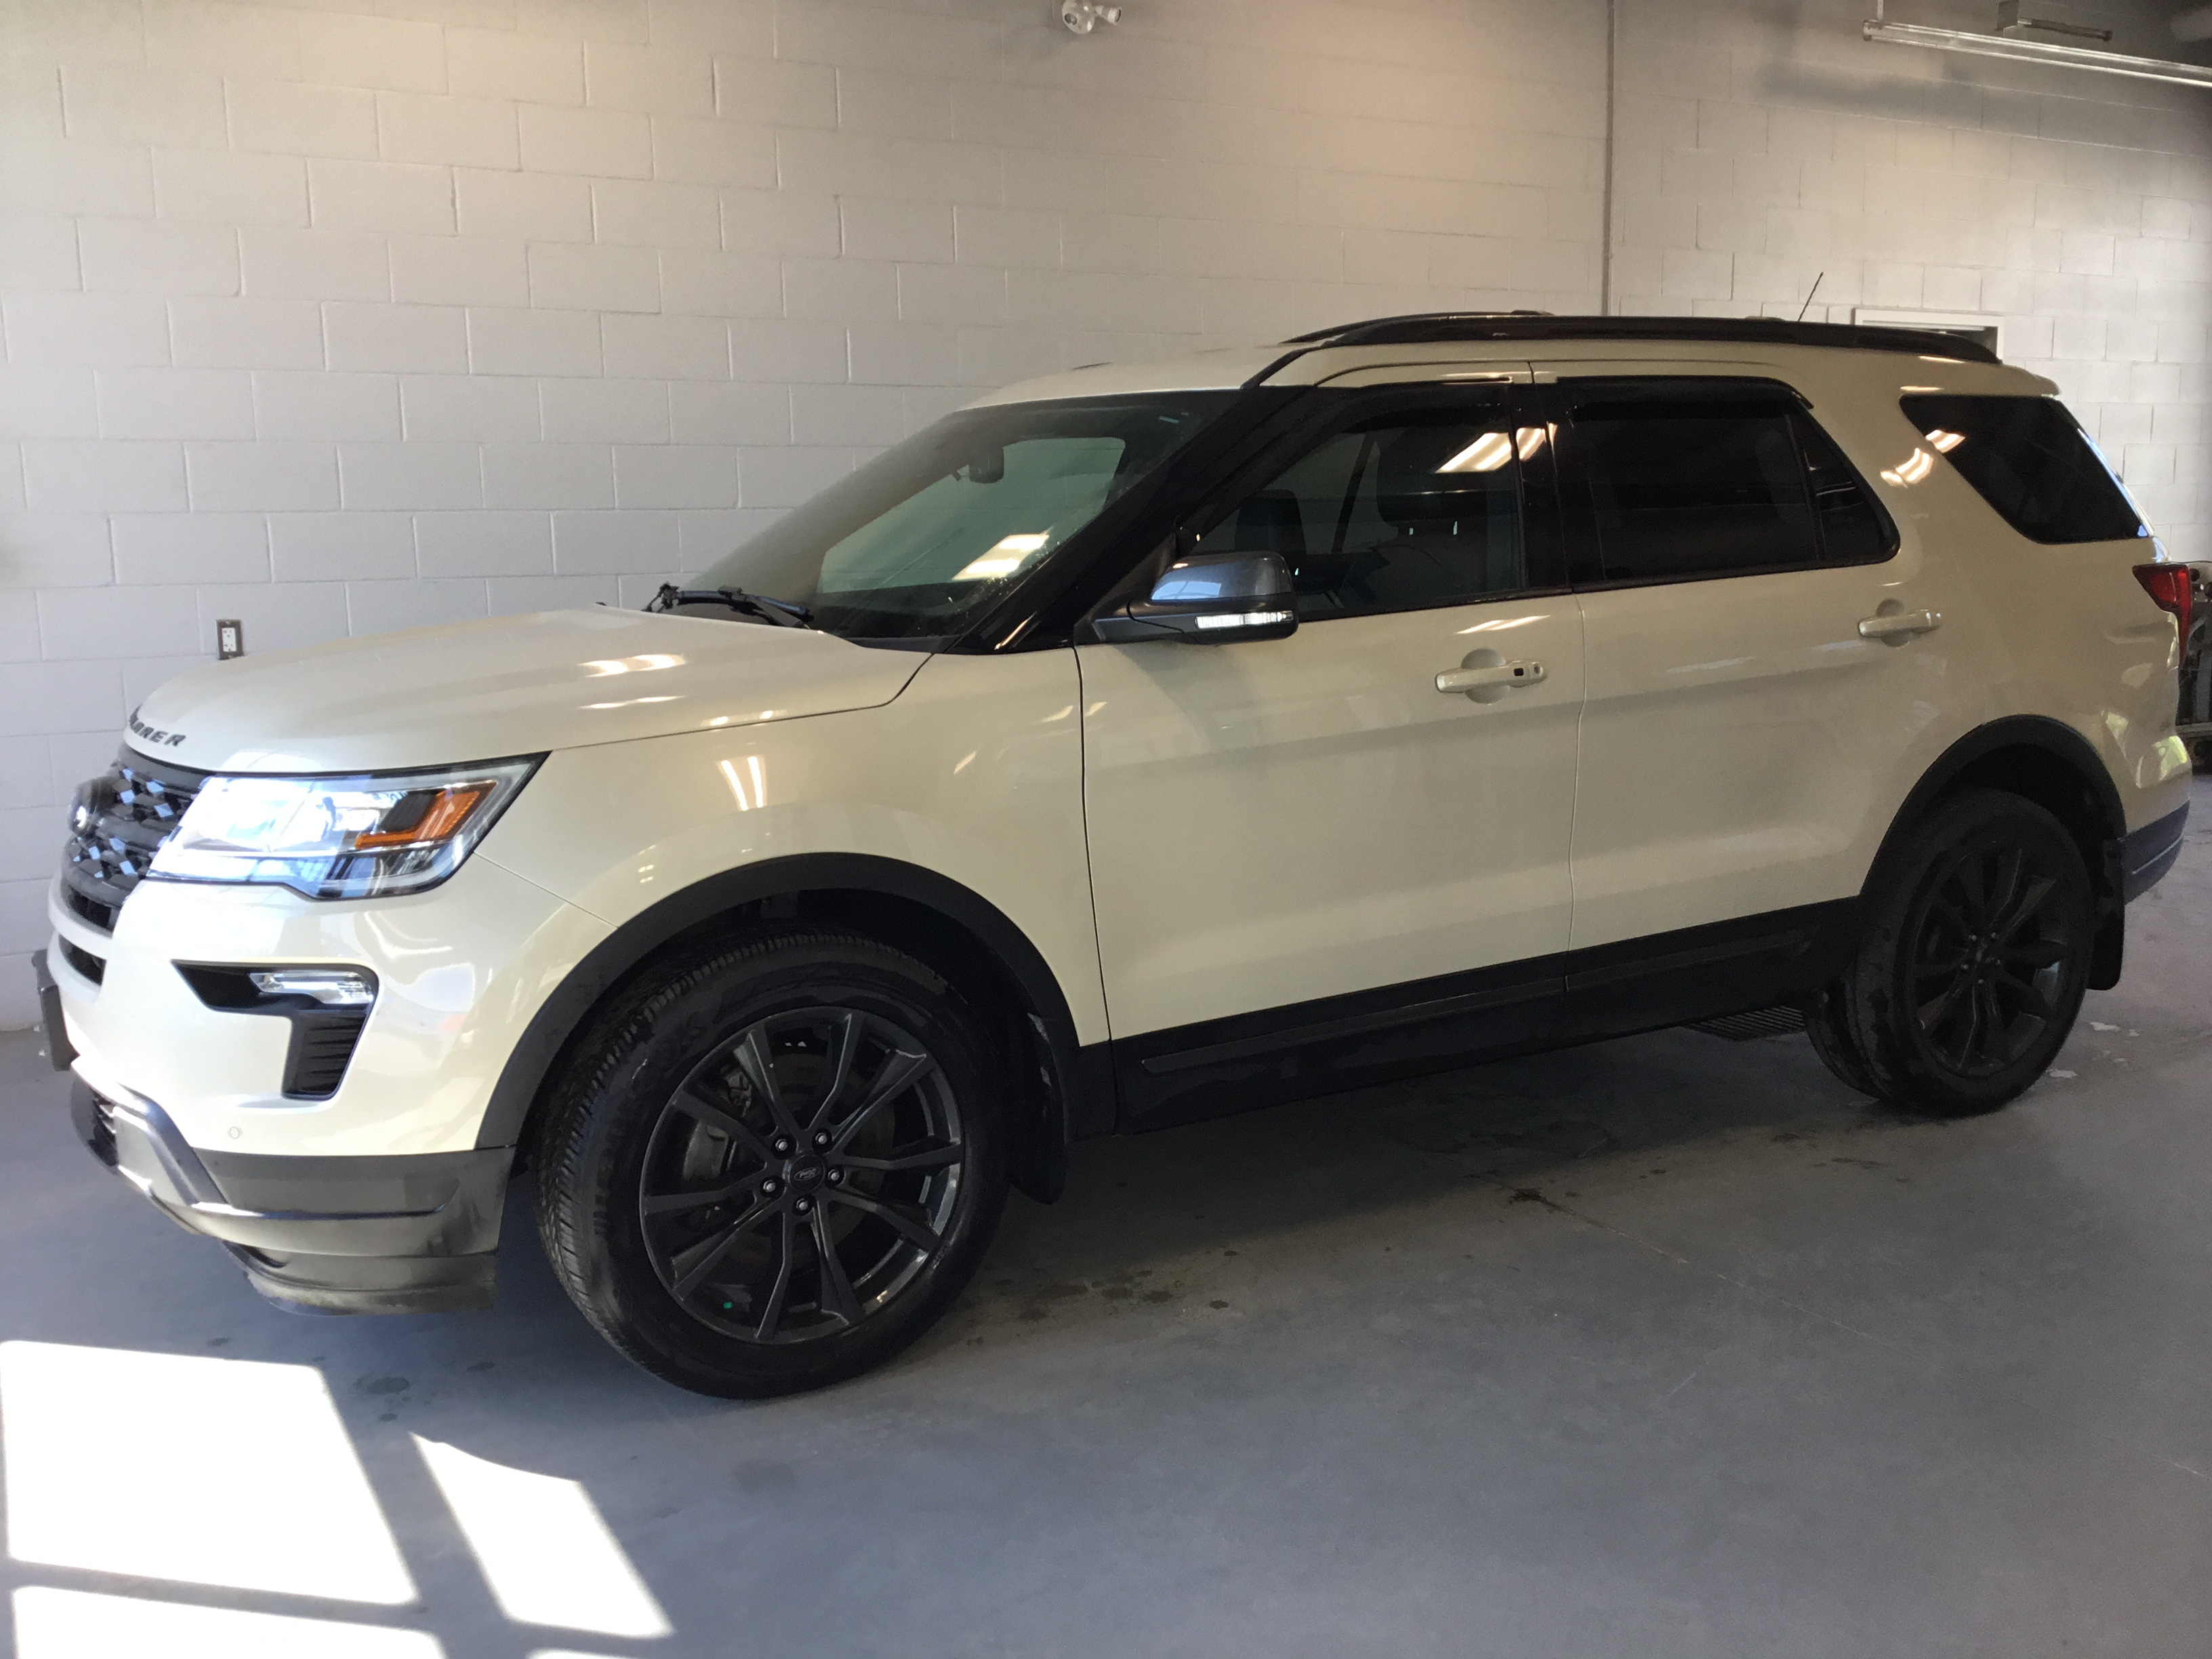 Used Cars, Trucks & SUVs for Sale in Wawa | Northern Lights Ford Sales